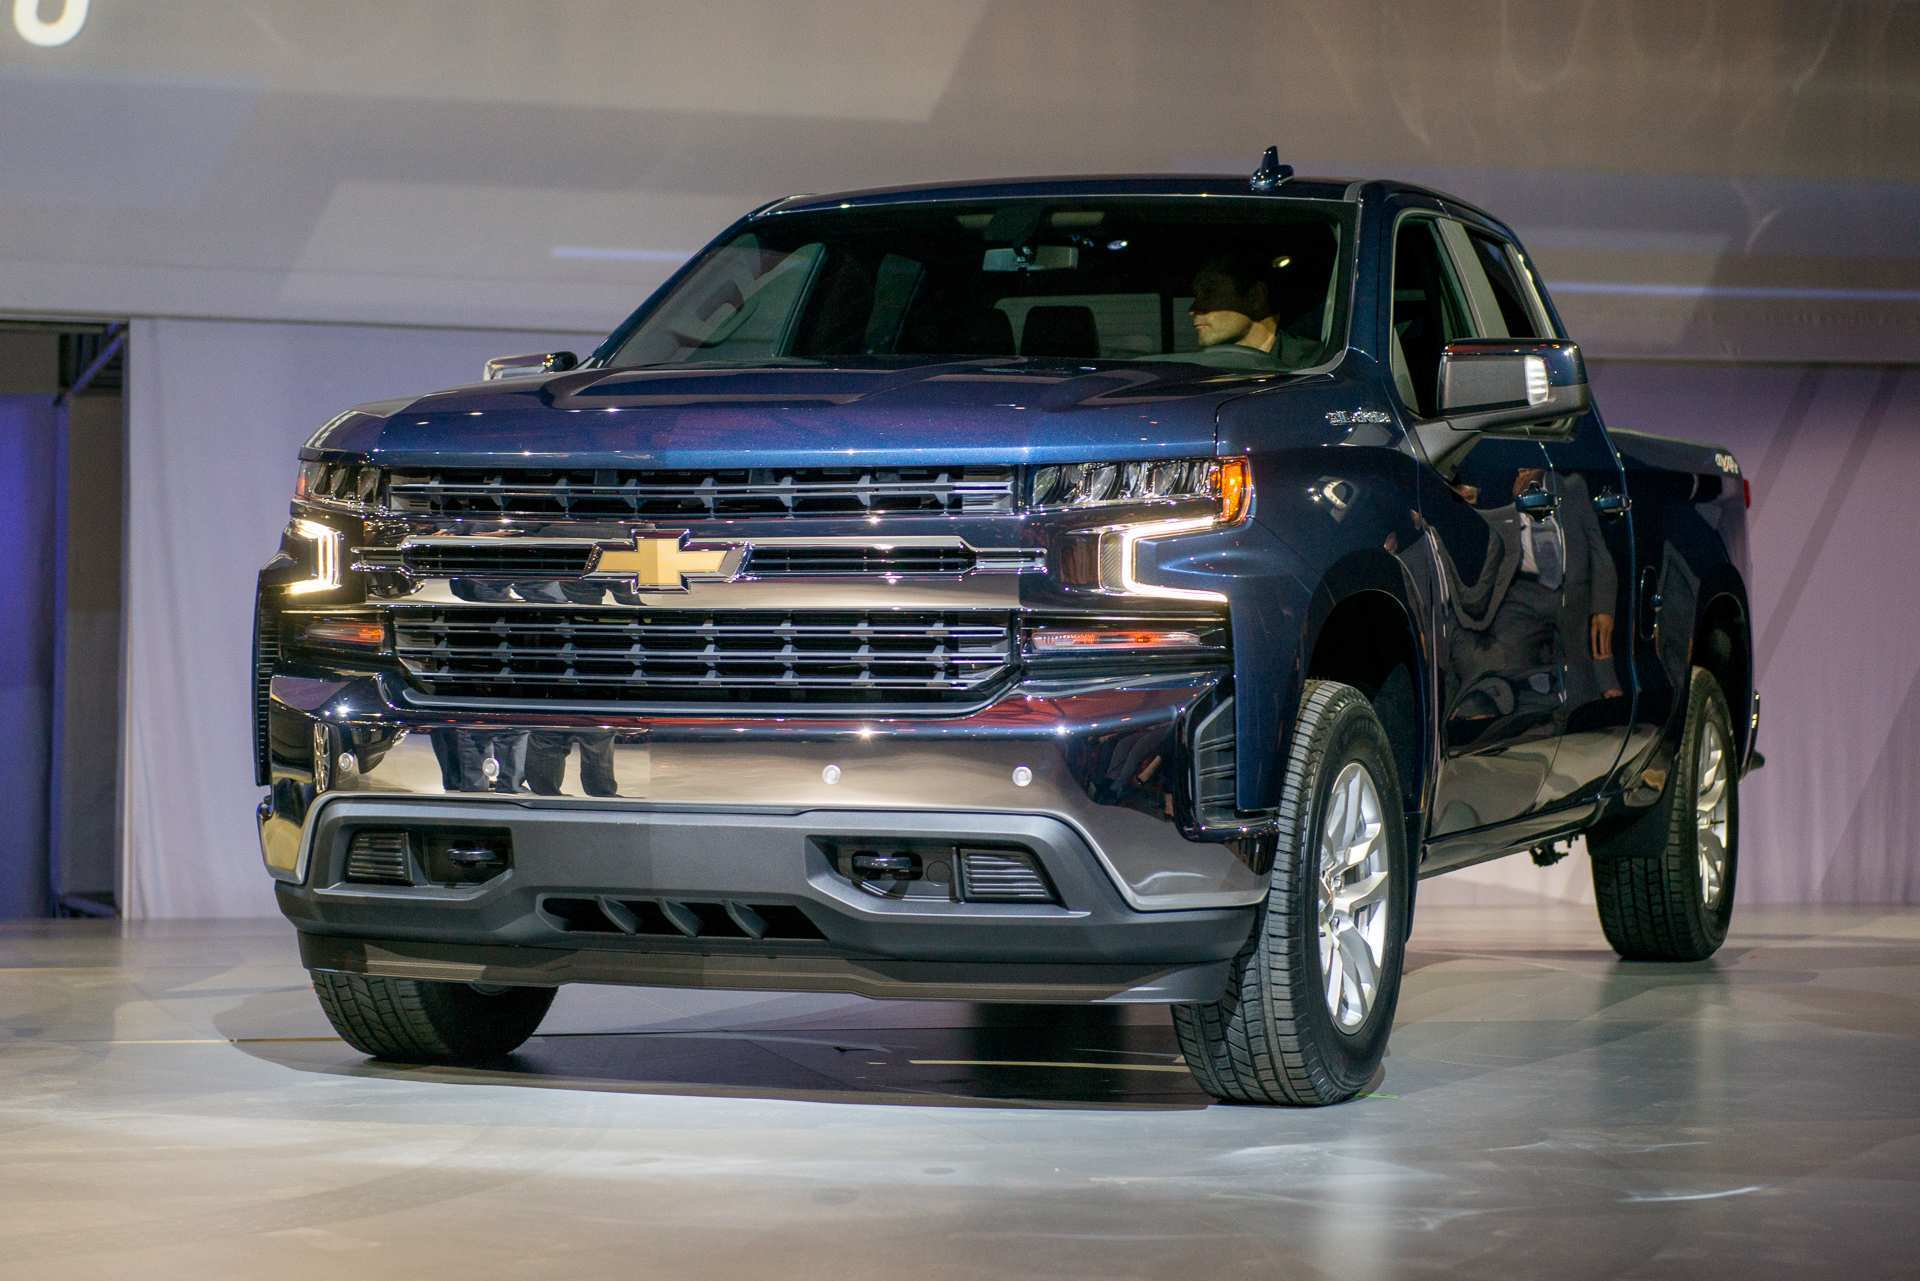 71 All New 2019 Chevrolet Pickup Rumors with 2019 Chevrolet Pickup